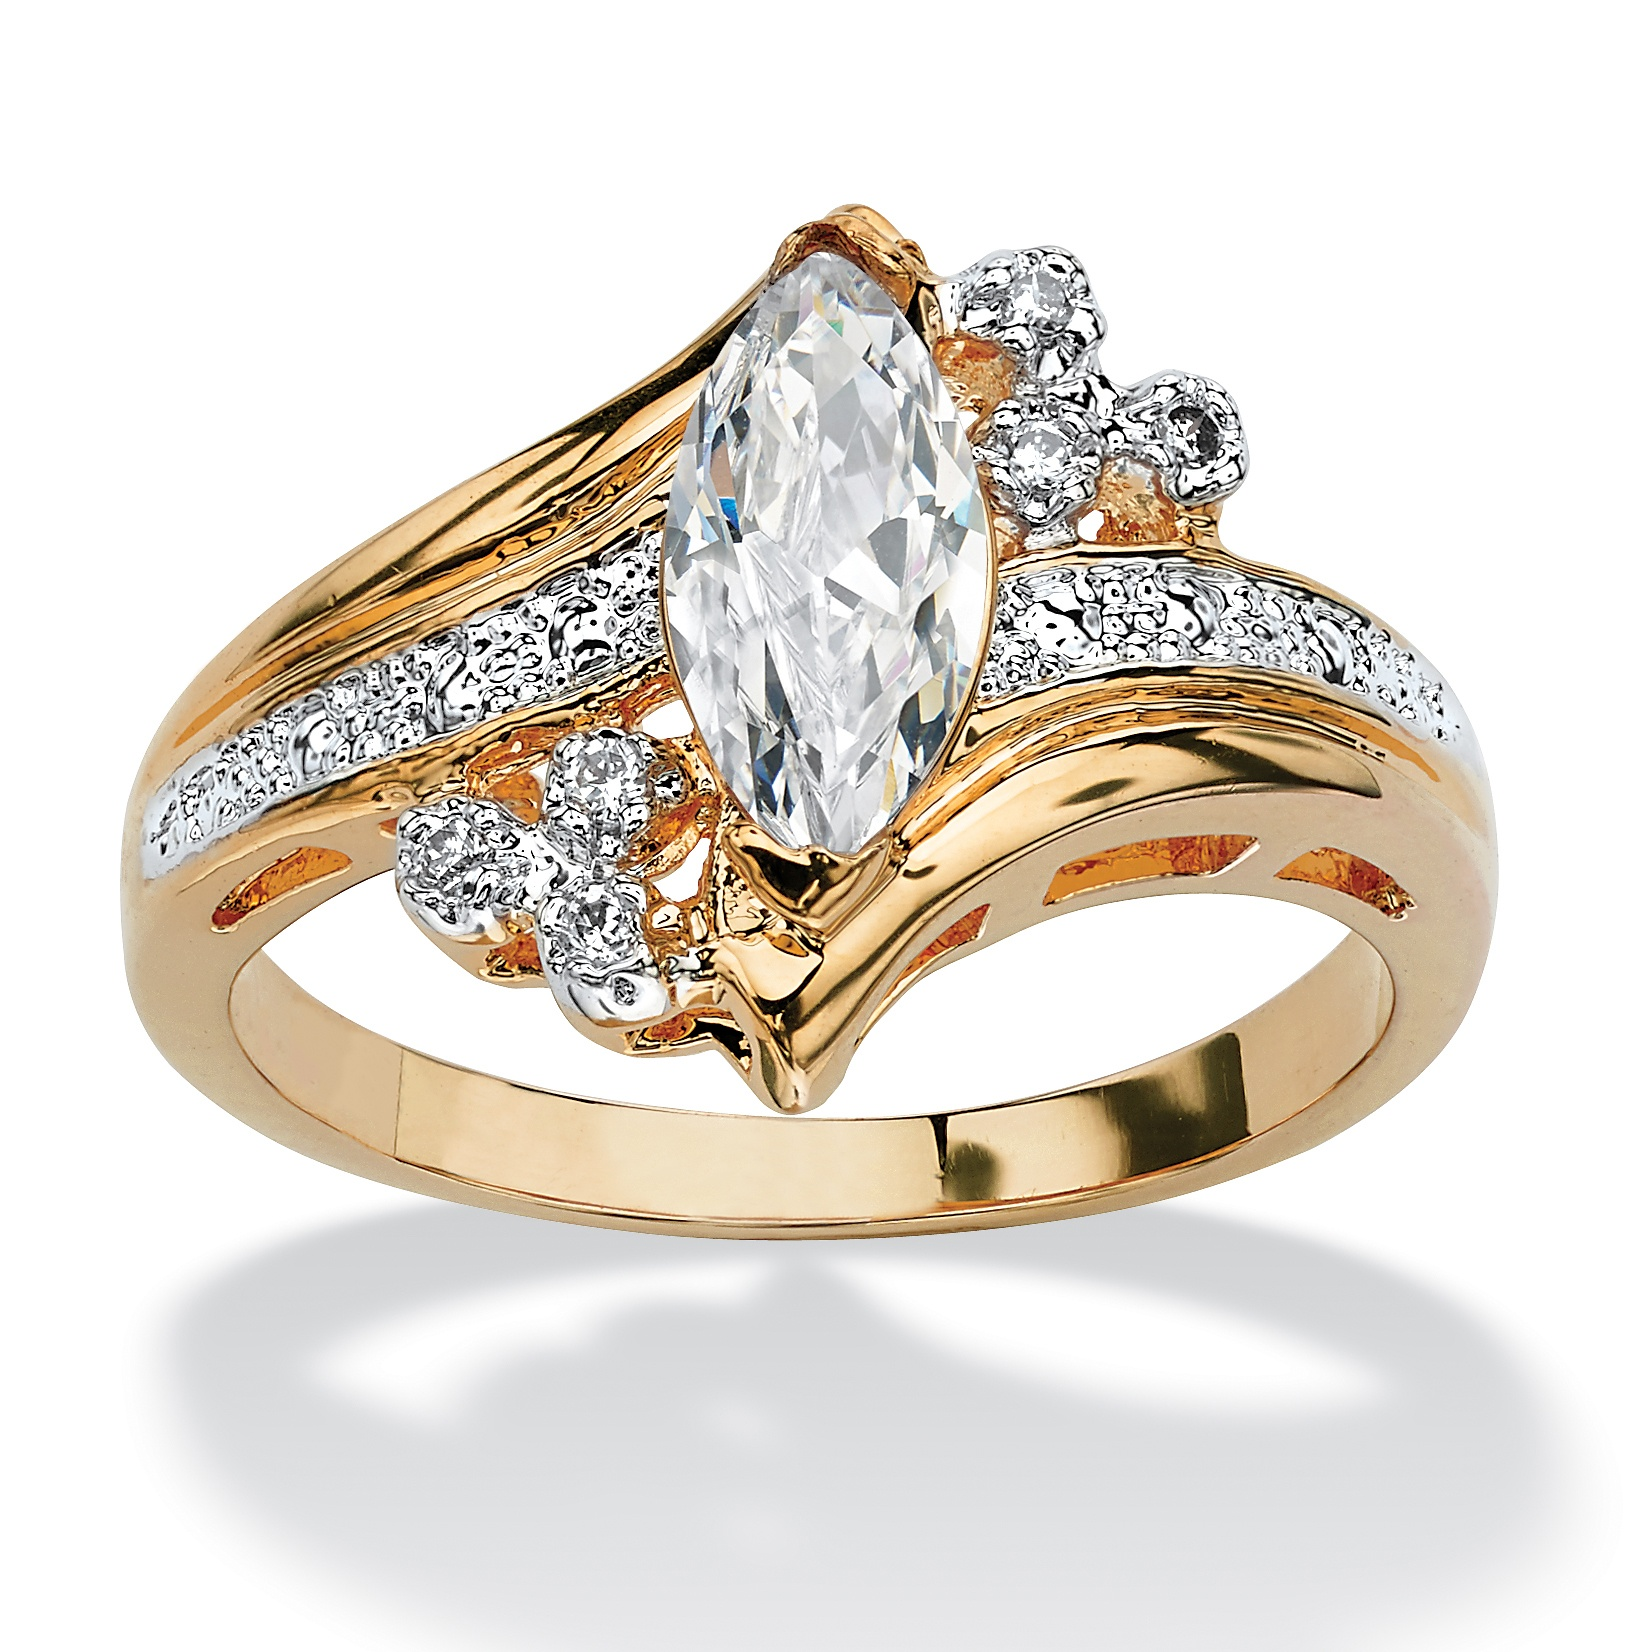 show diamond wedding your rings anniversary love aniversary